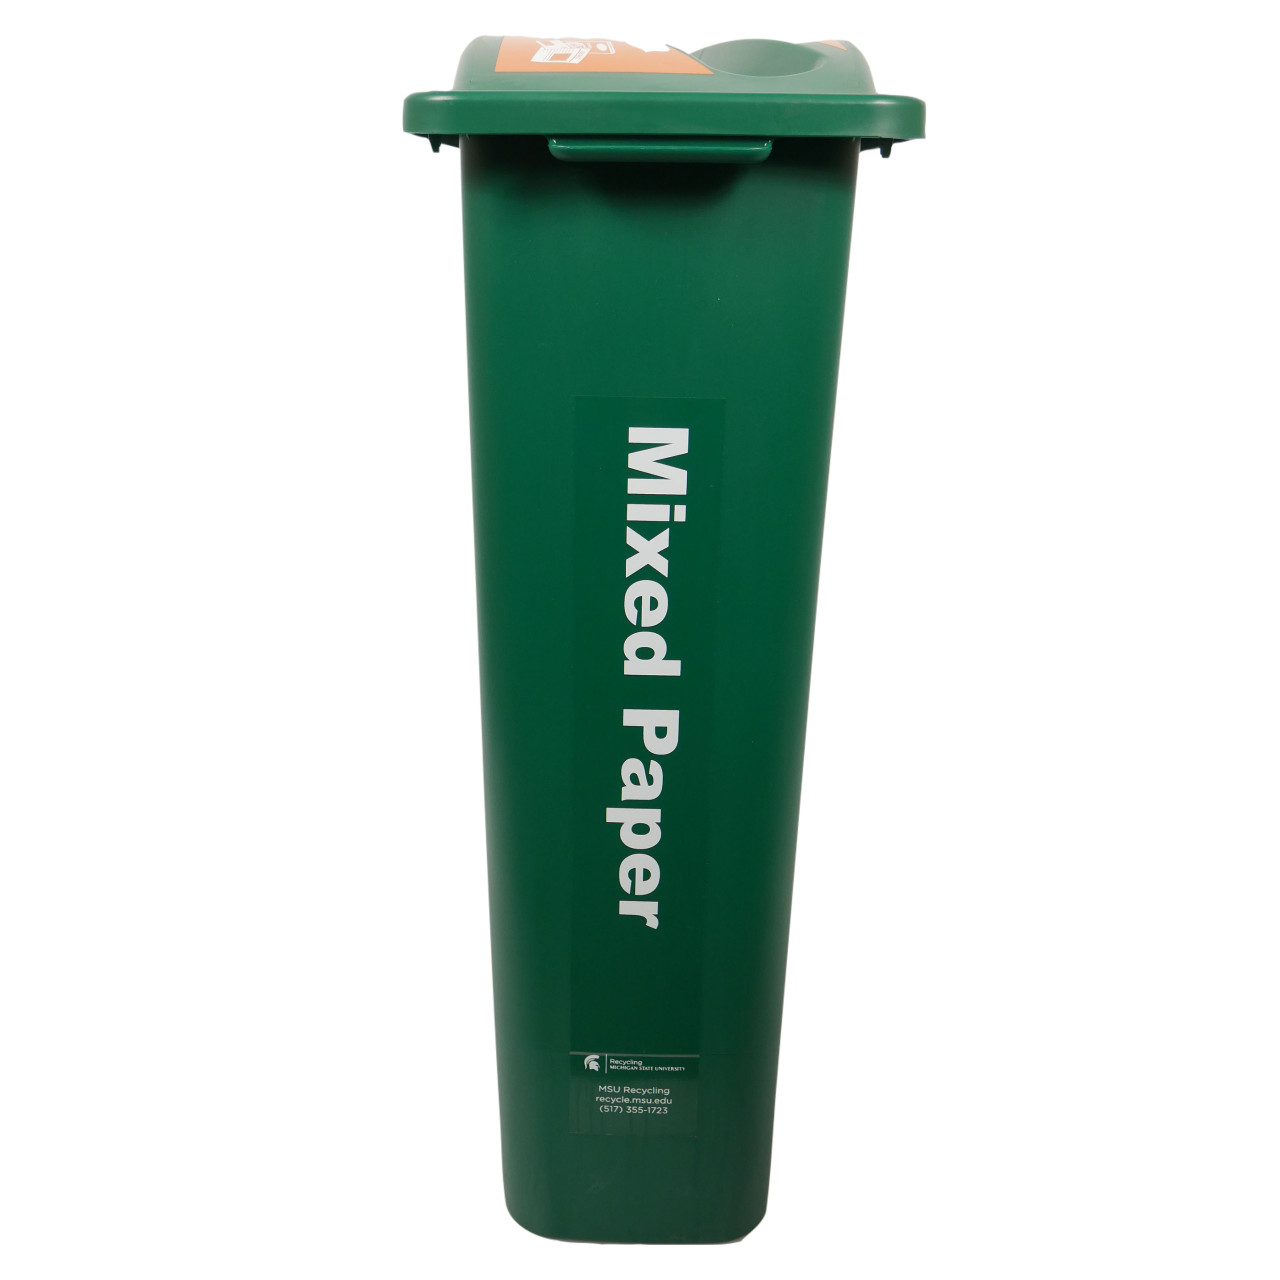 Hallway Recycling Bin for Mixed Paper - narrow view